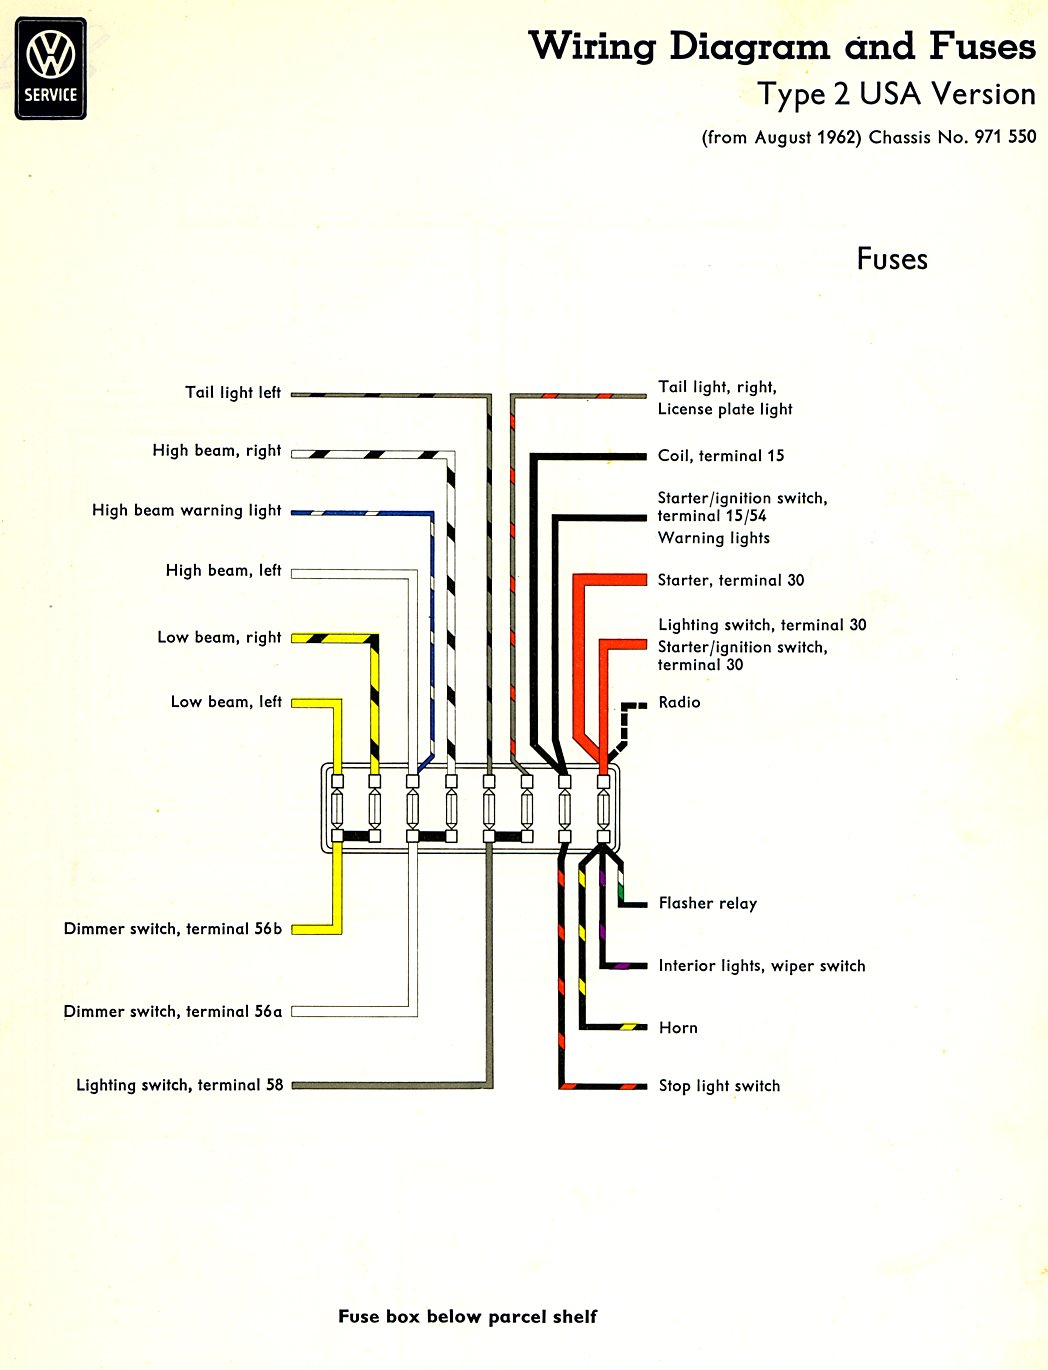 Type 2 Wiring Diagrams 1972 Ford Turn Signal Switch Diagram